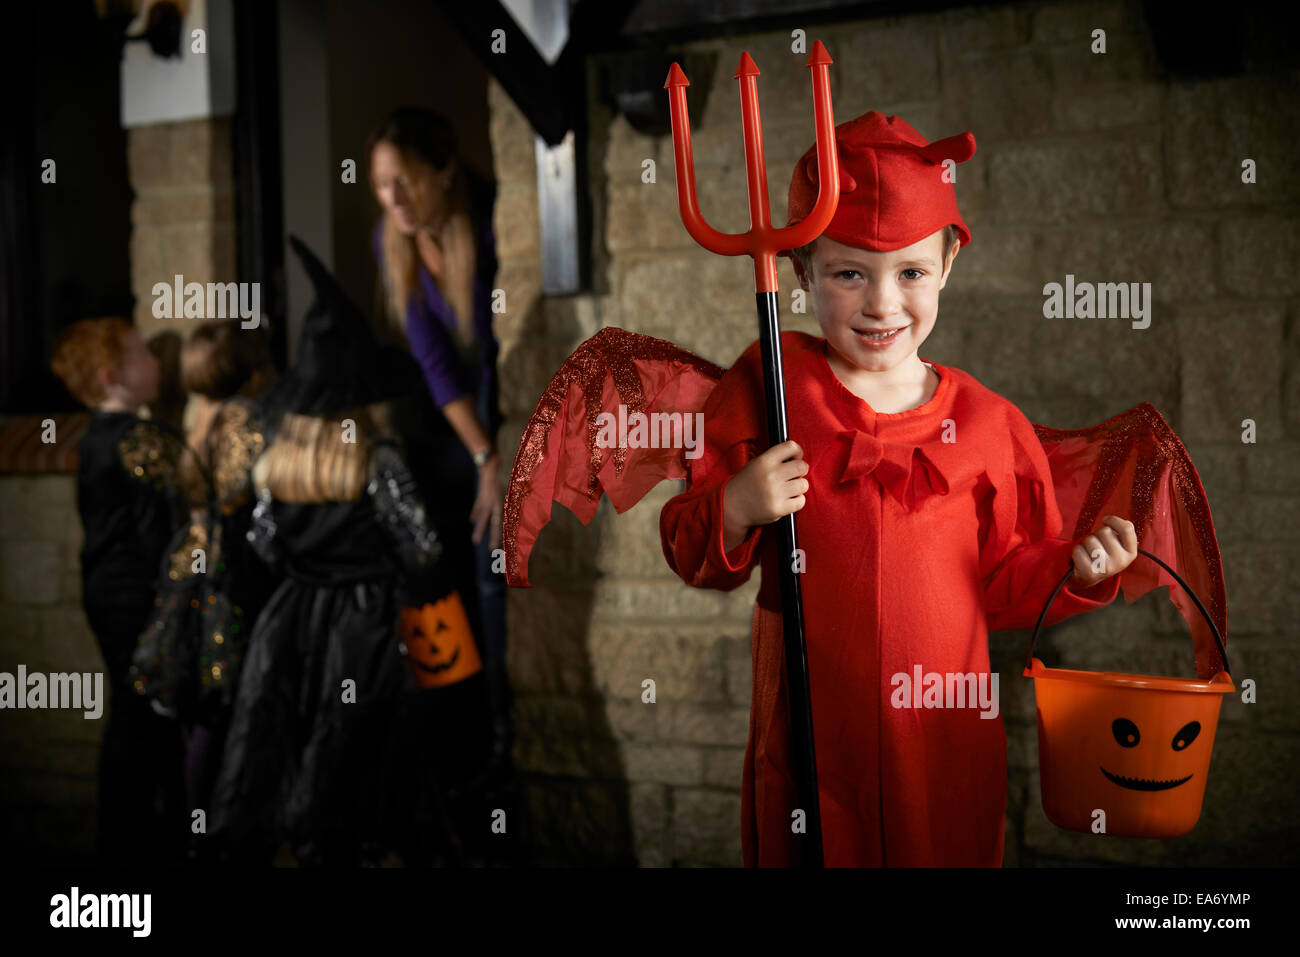 Halloween Party avec enfants trick or treating en costume Banque D'Images